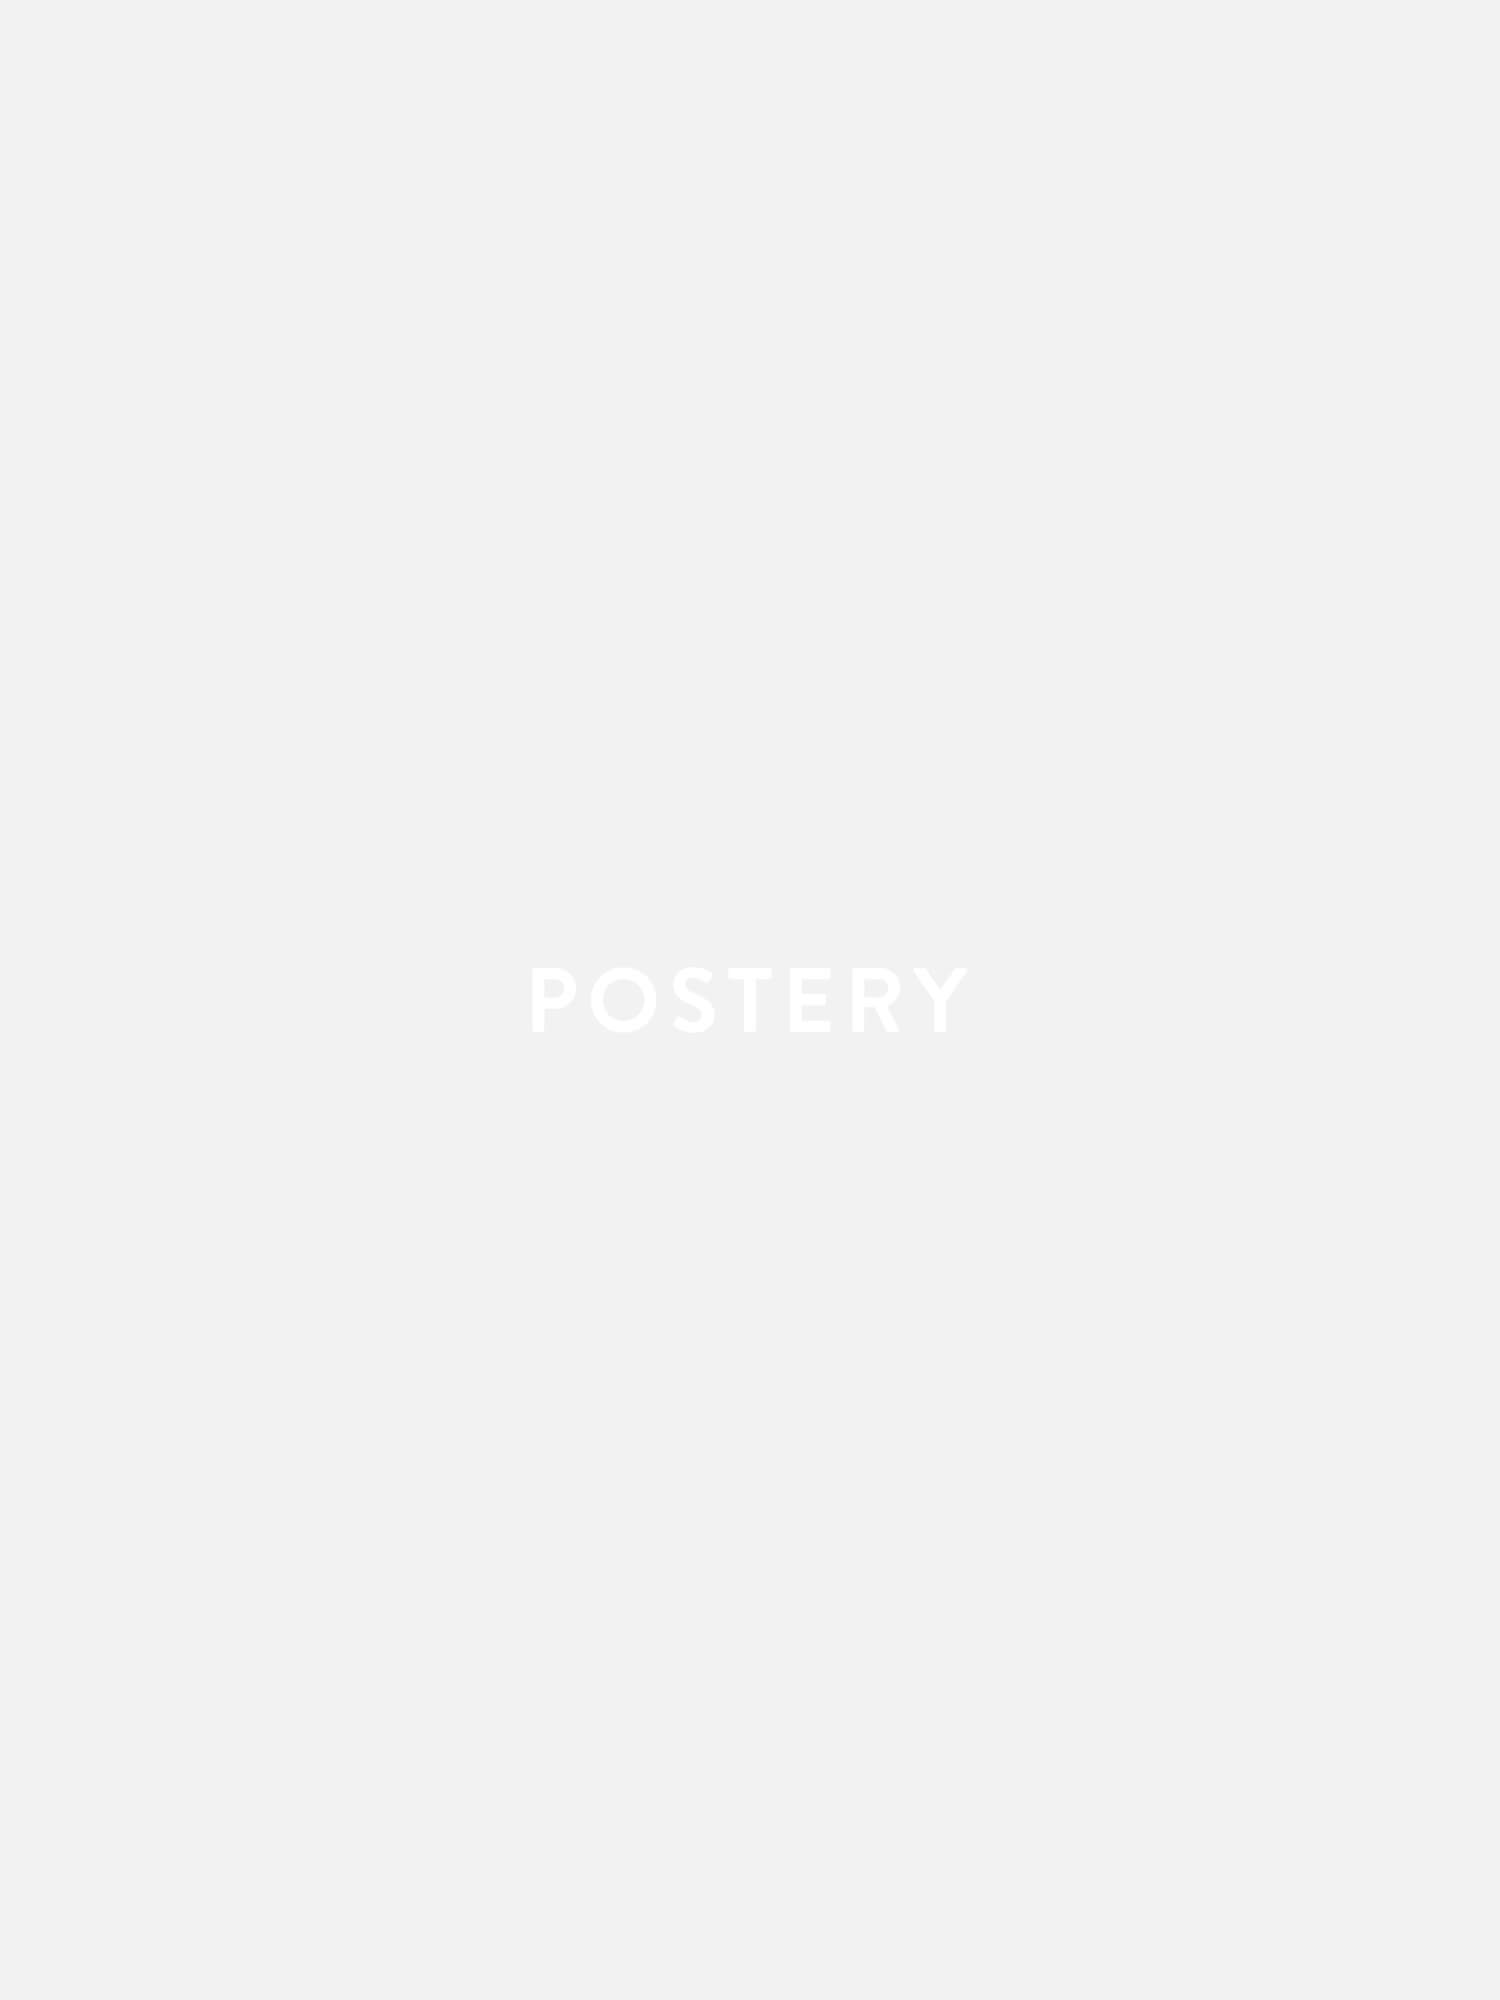 Sea Shell in Florida Poster